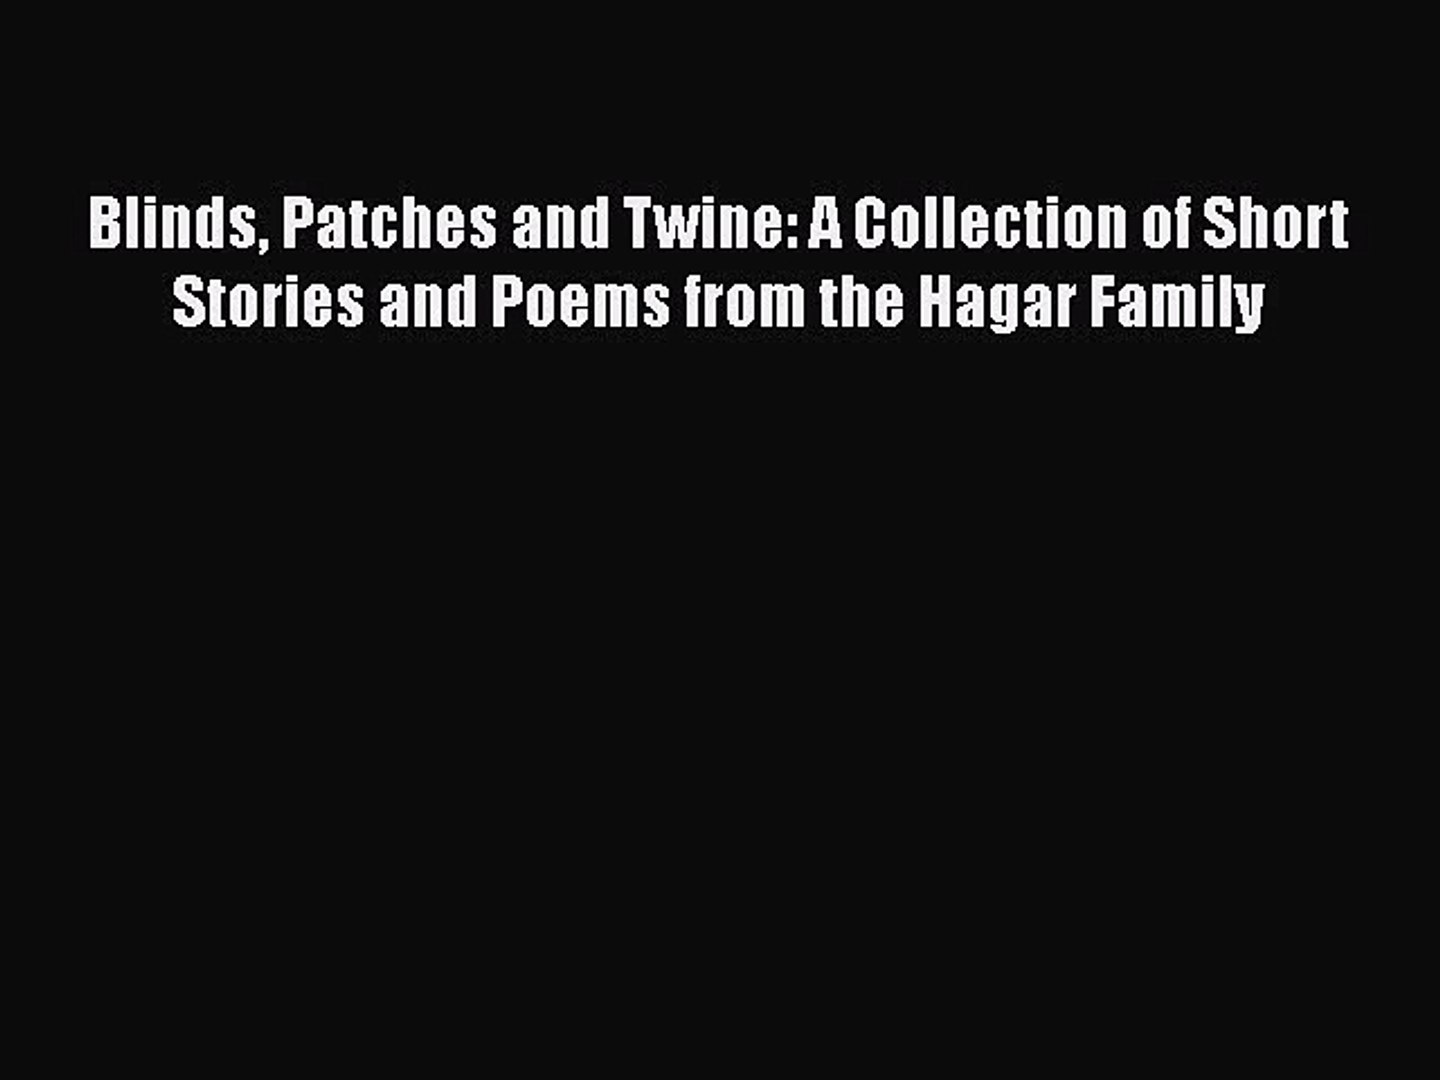 Download Blinds Patches and Twine: A Collection of Short Stories and Poems from the Hagar Family